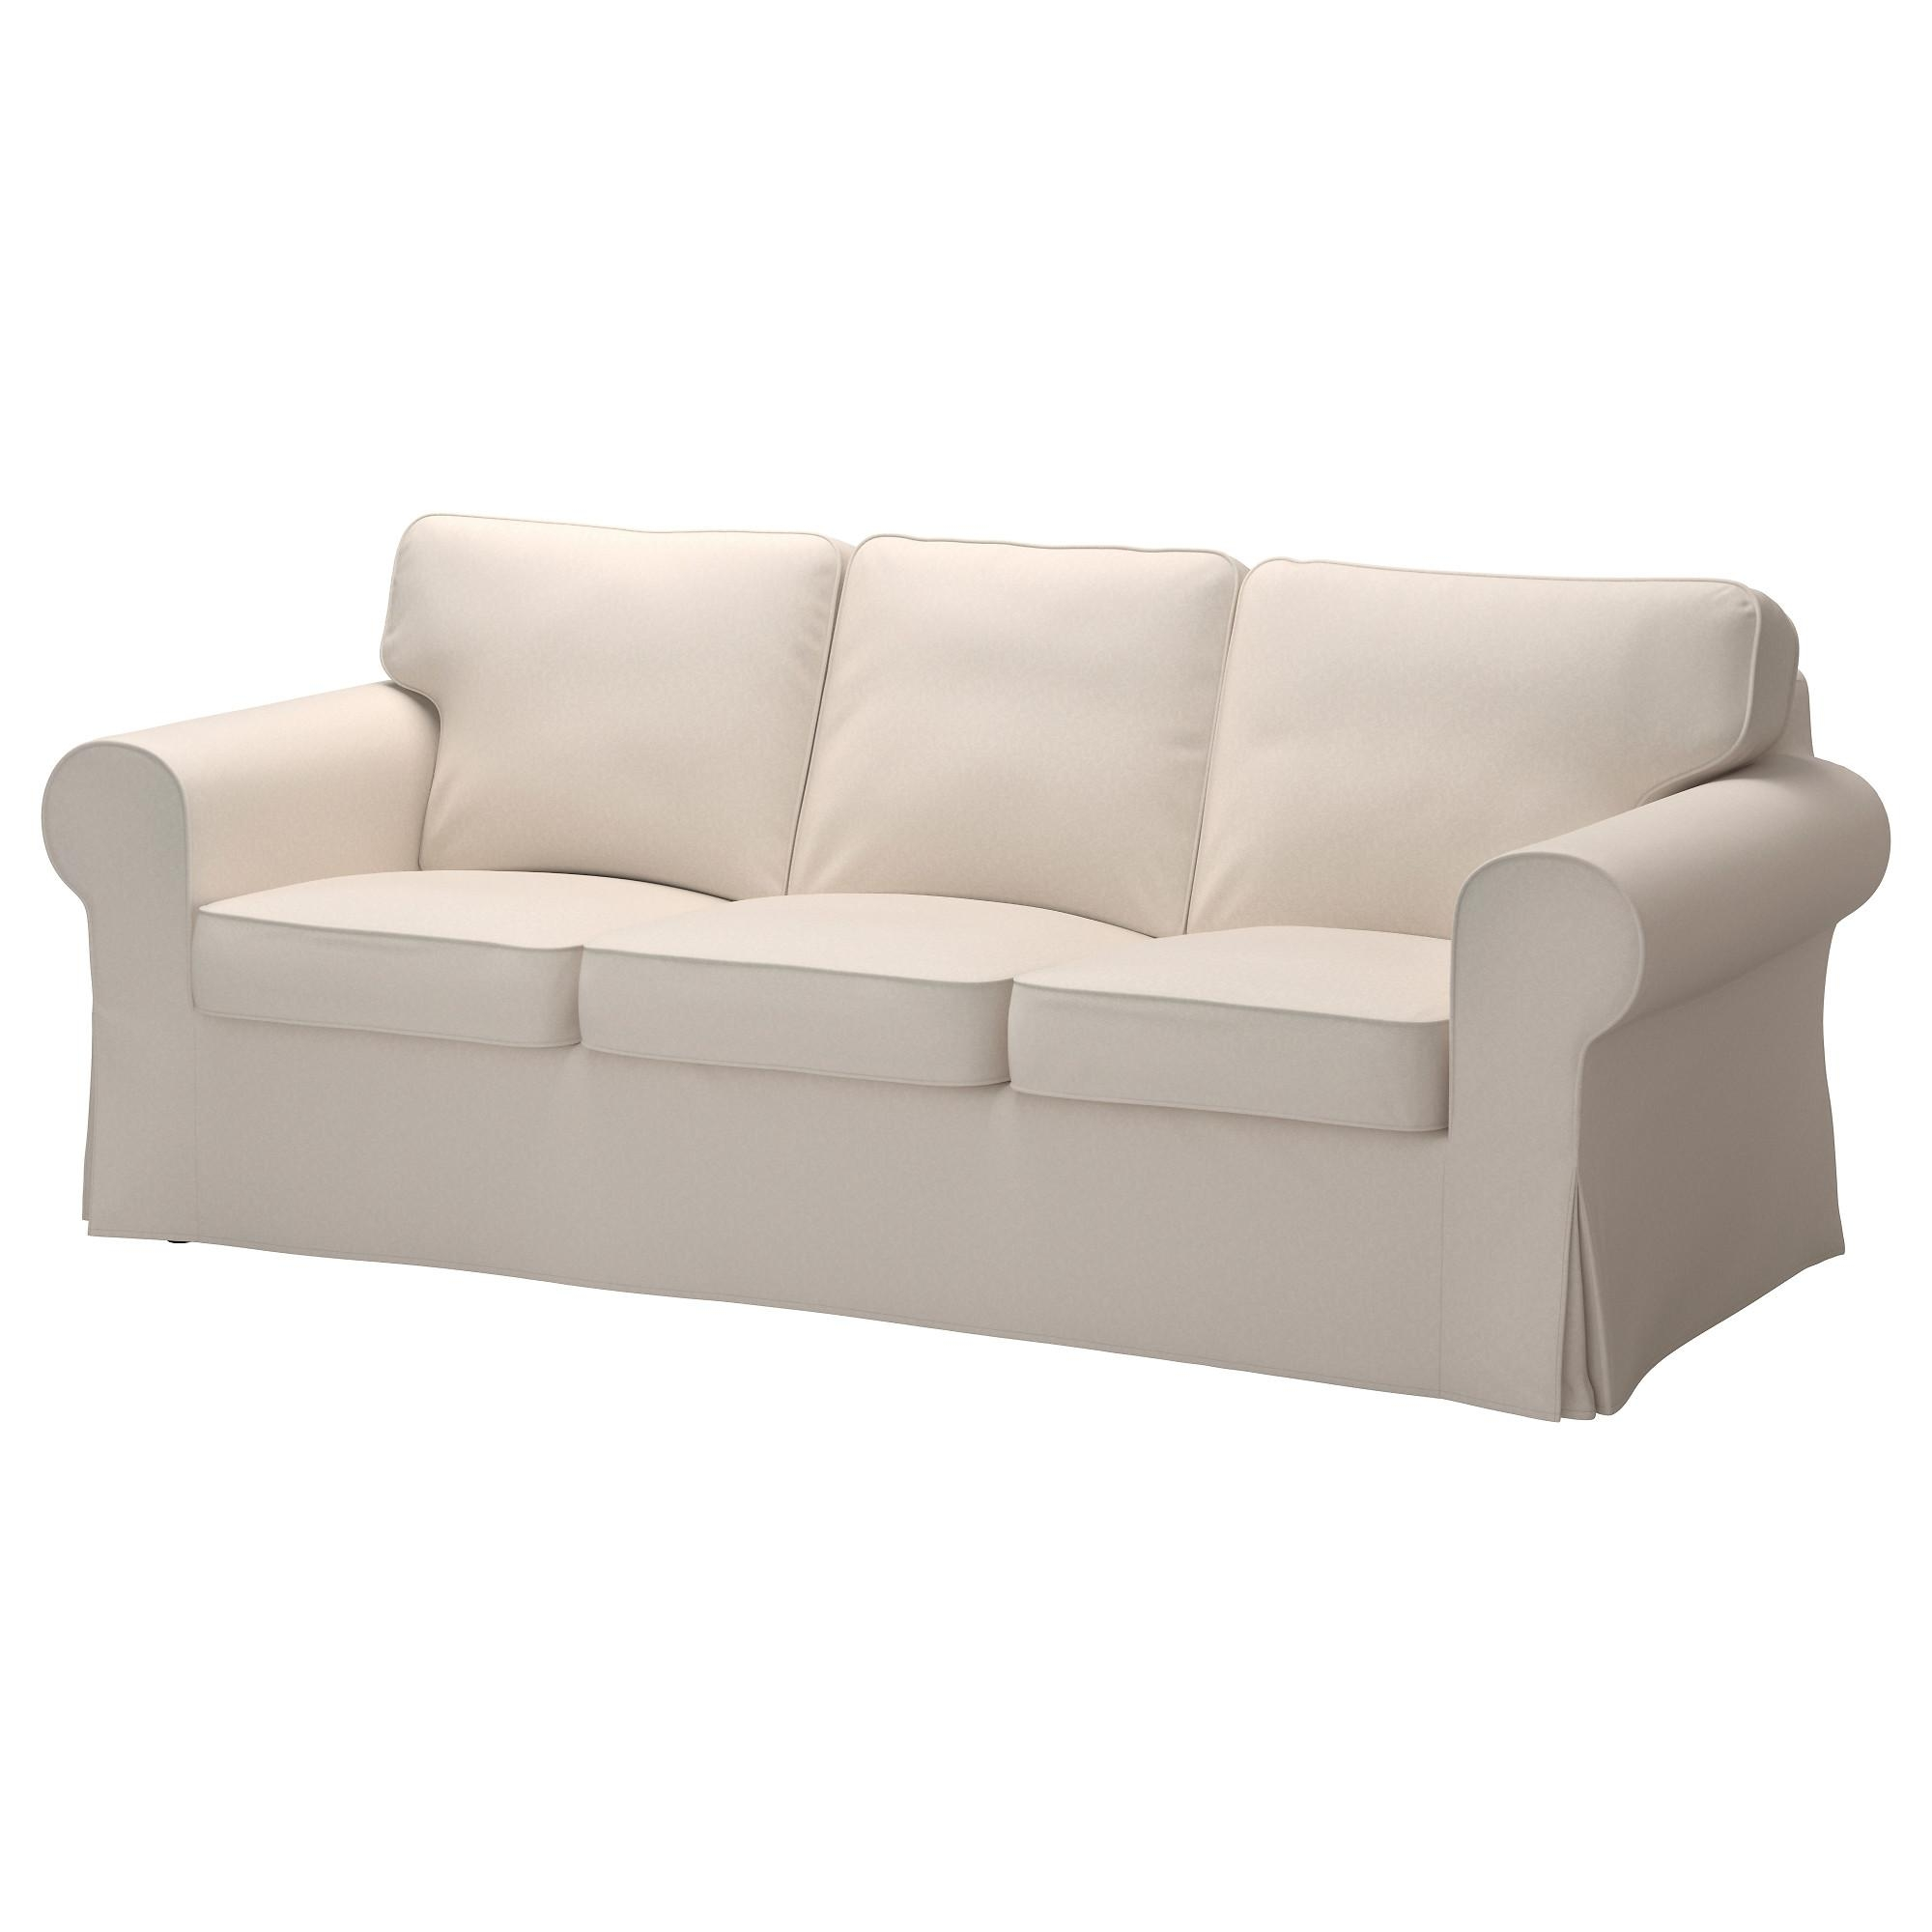 Furniture: Update Your Living Room With Best Sofa Slipcover Design With 3 Piece Sectional Sofa Slipcovers (View 17 of 20)